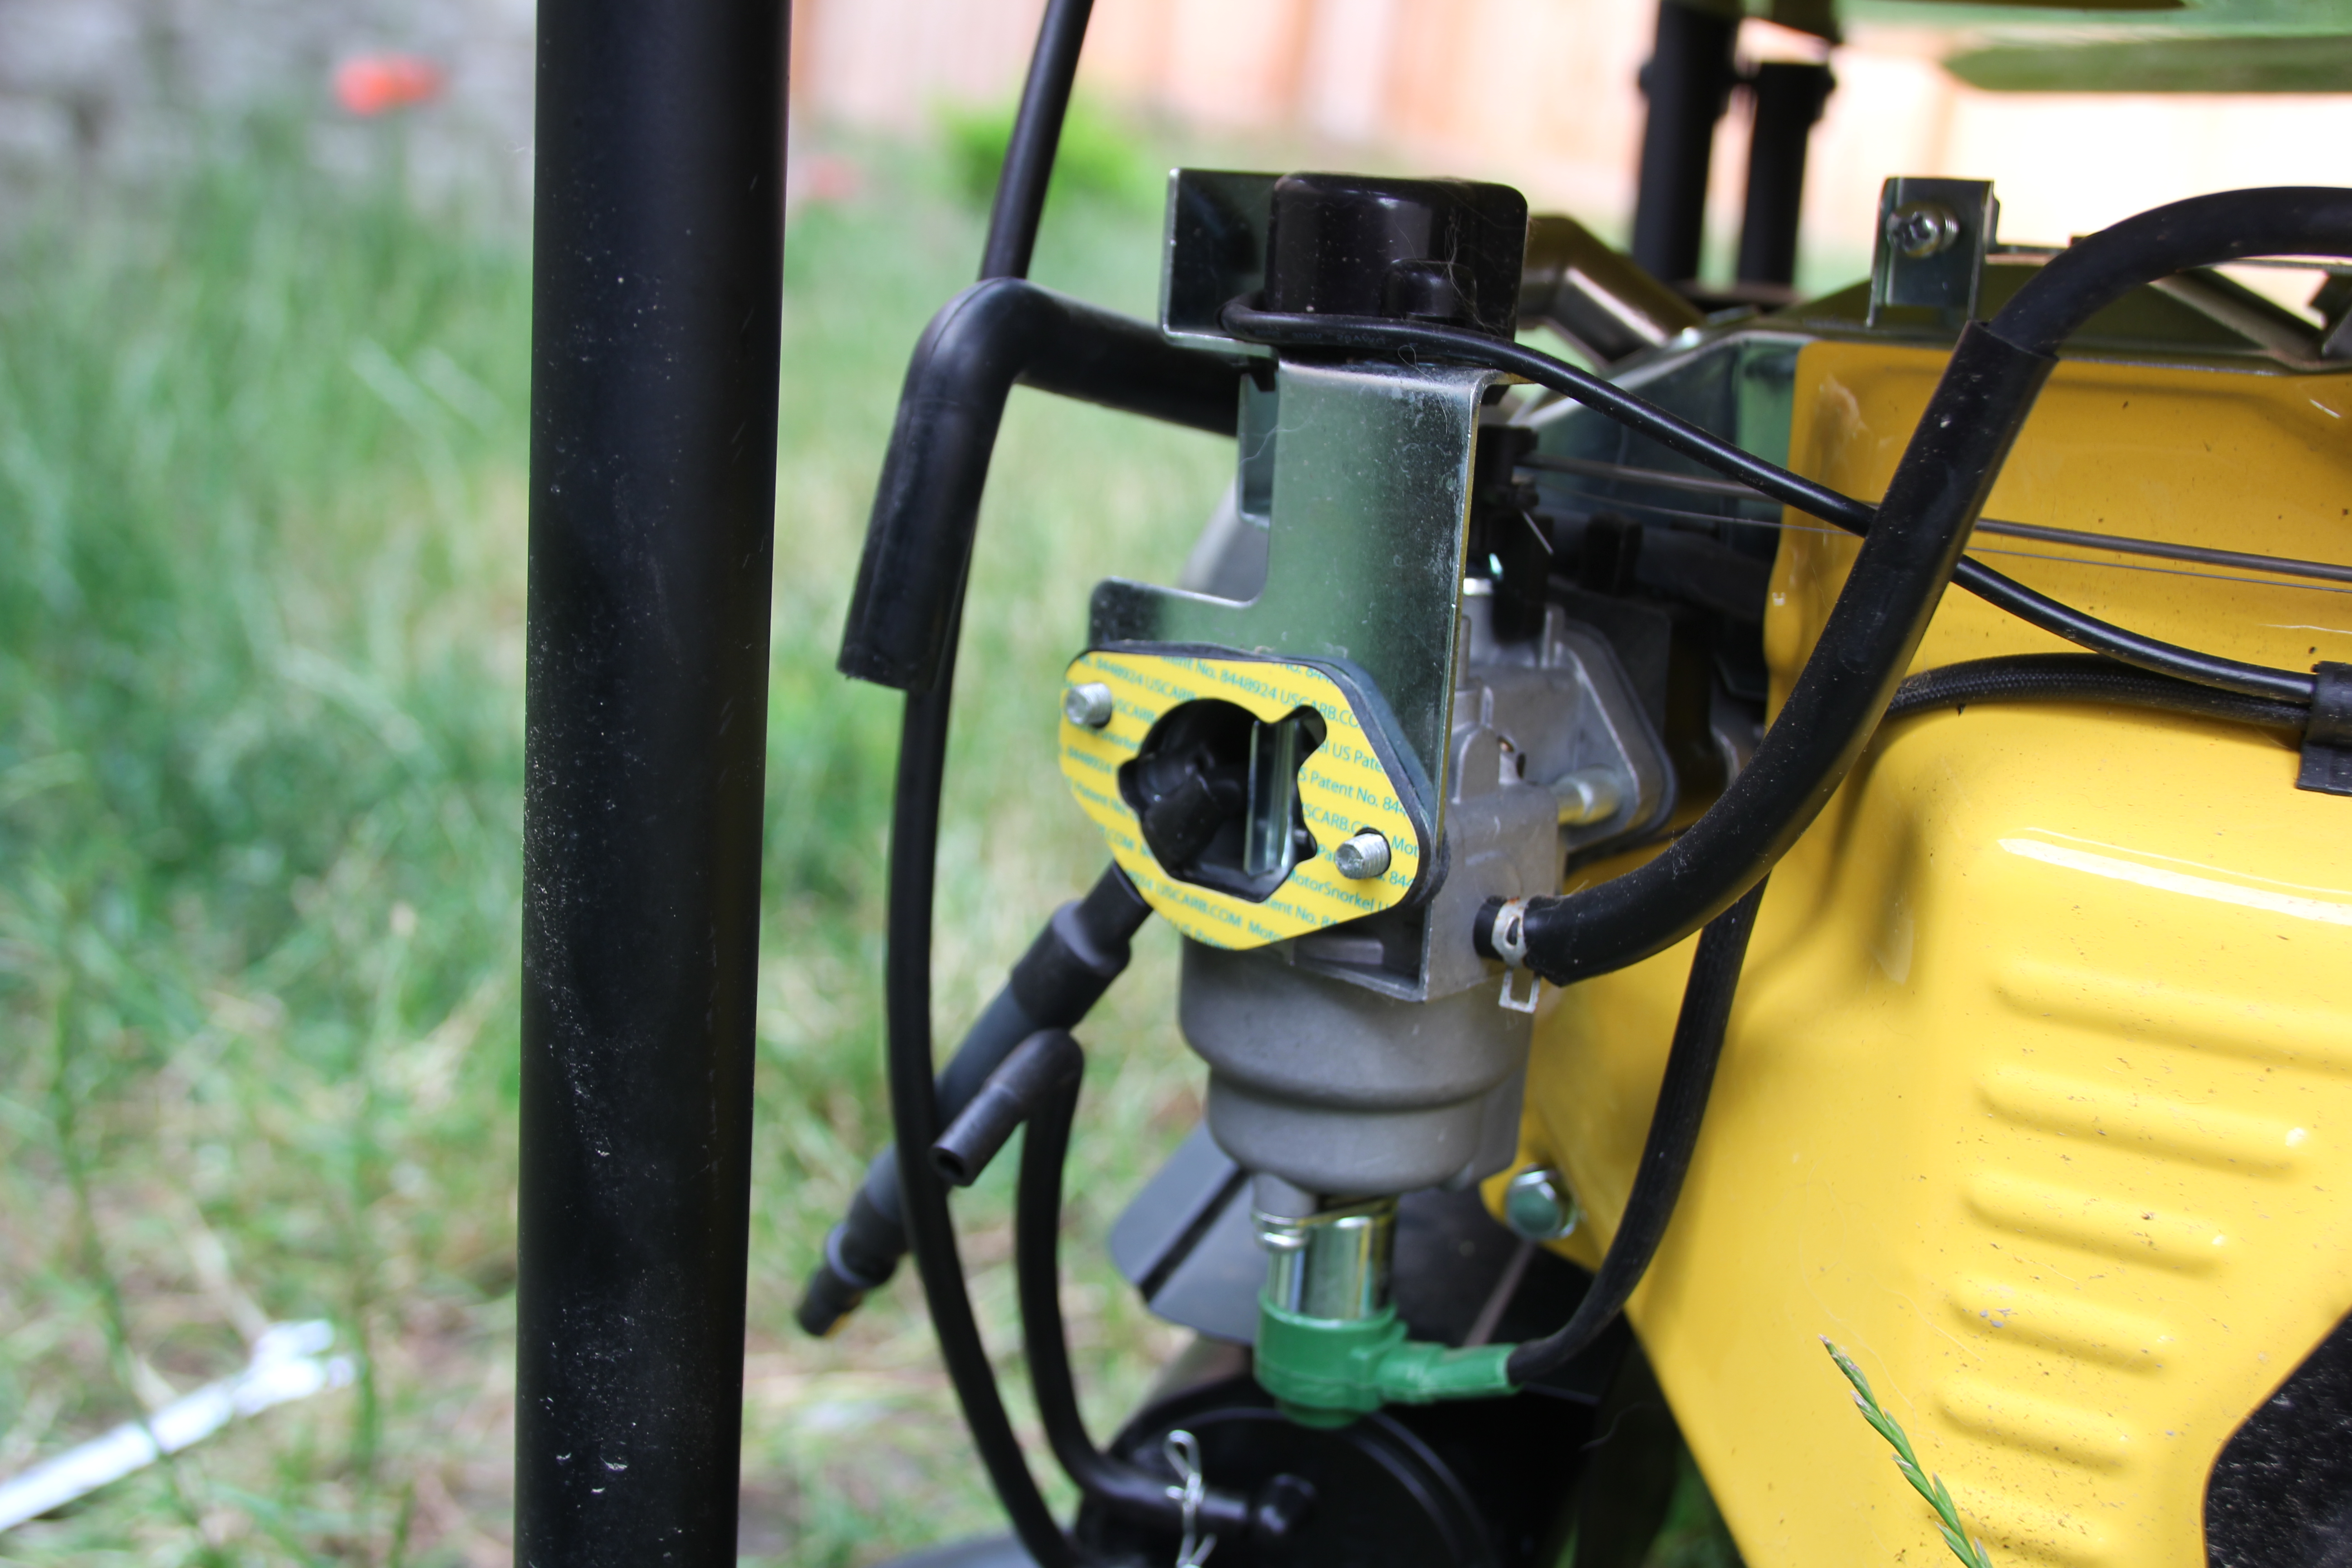 Converting a Champion Generator to run on Propane (or Natural Gas